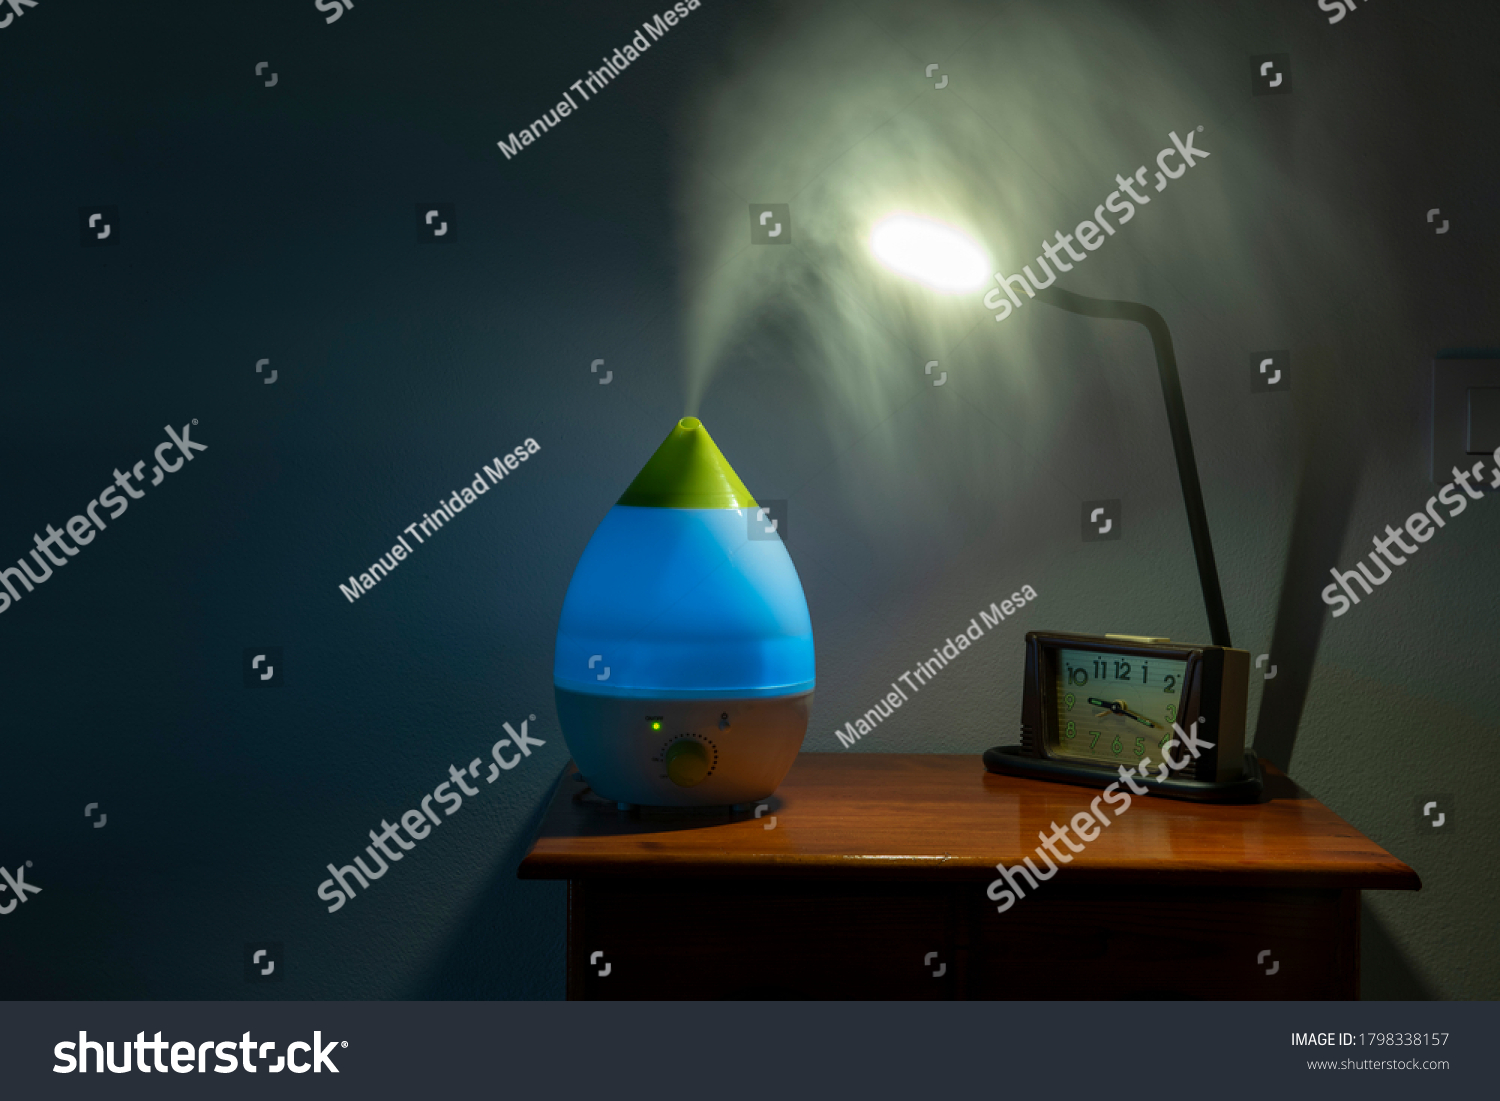 stock-photo-ultrasonic-humidifier-with-b